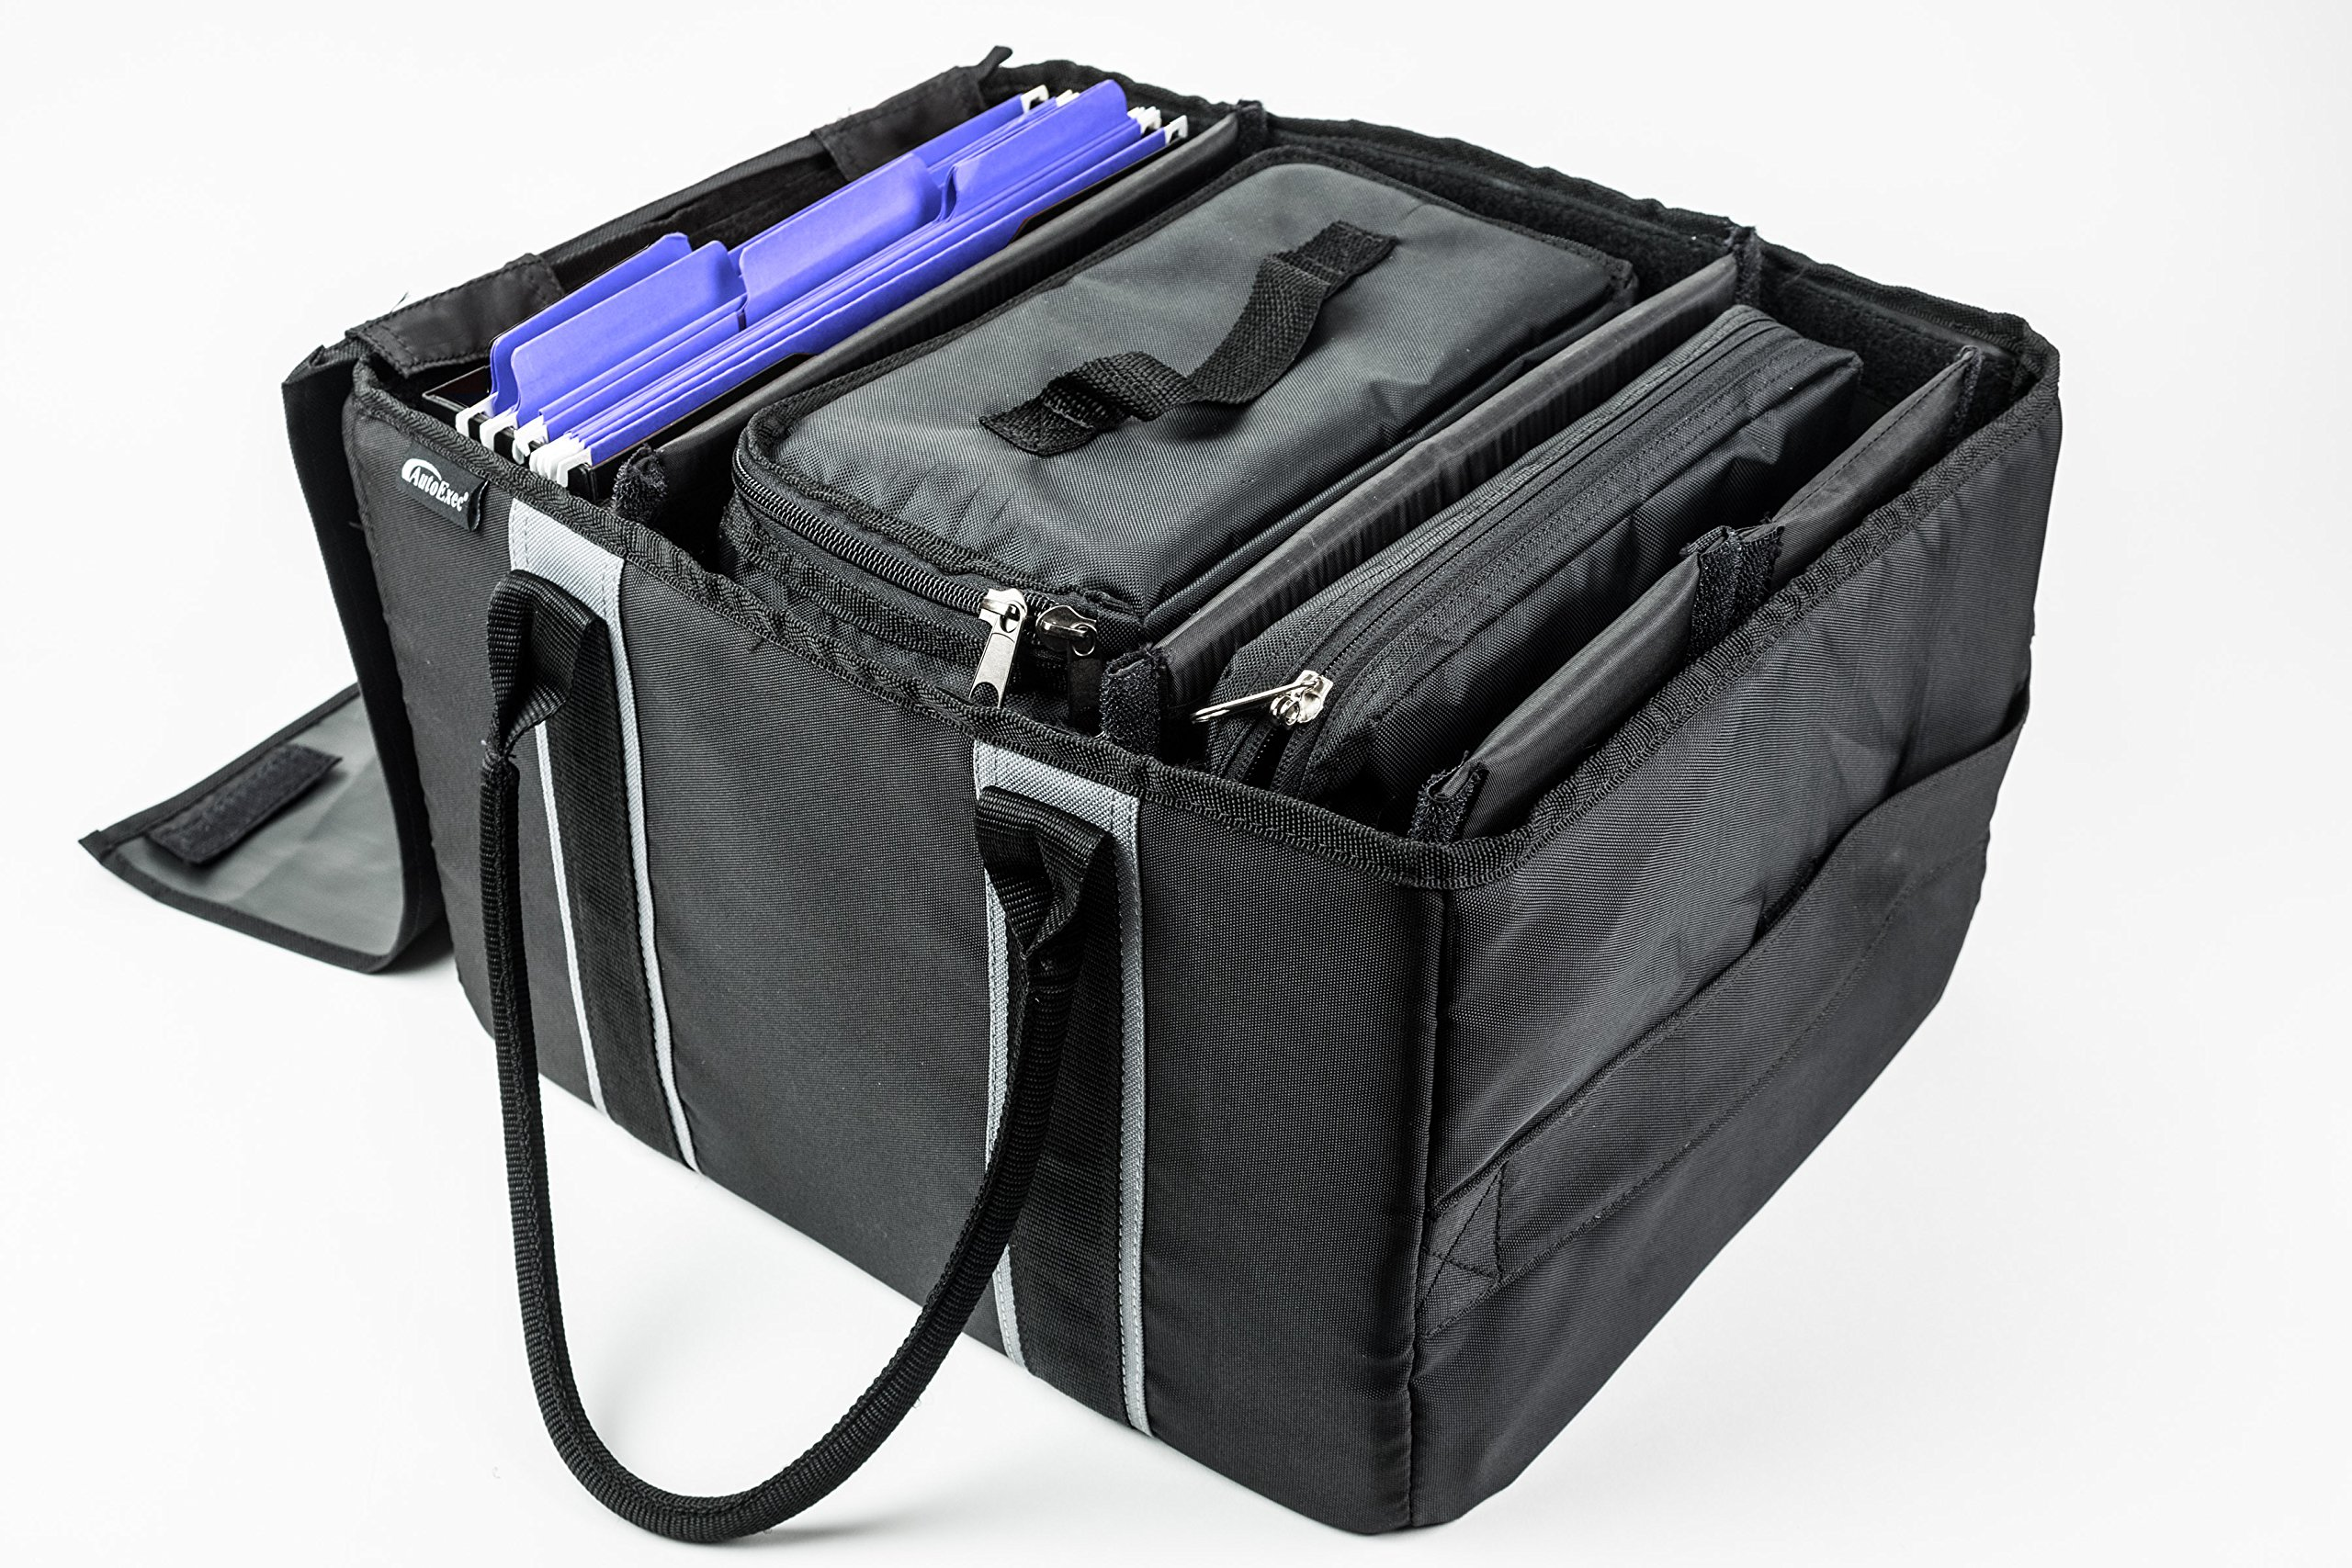 AutoExec AETote-09 Black/Grey File Tote with One Cooler and One Tablet Case by AutoExec (Image #17)